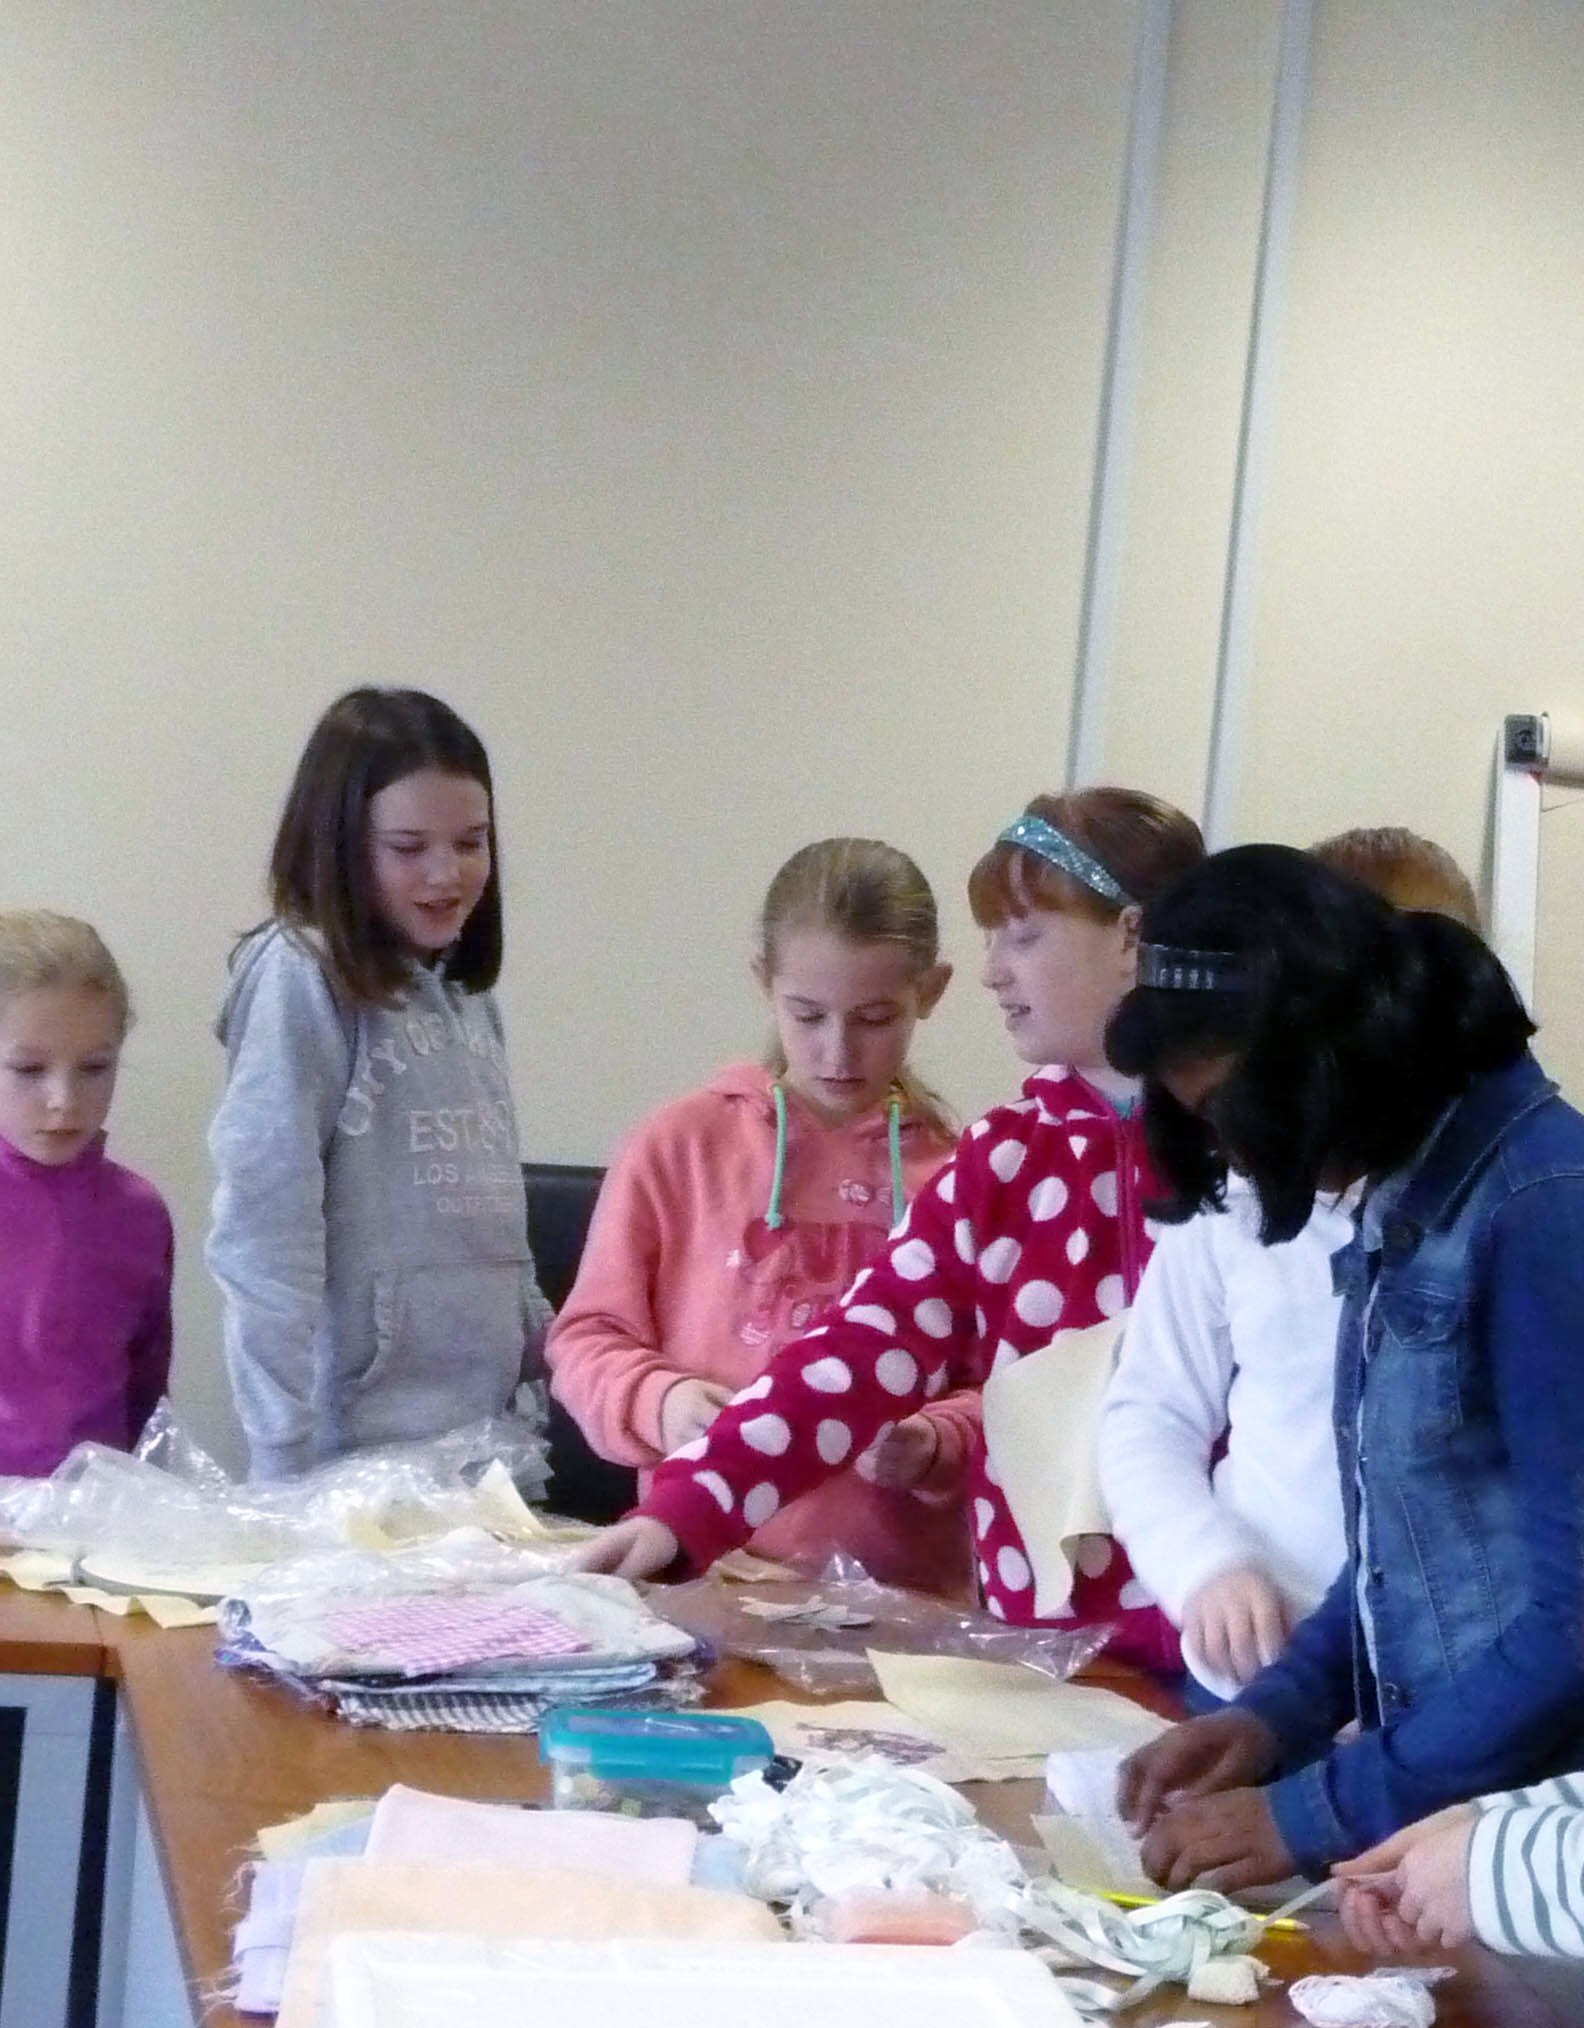 Merseyside YE choosing lace and ribbons for their latest project